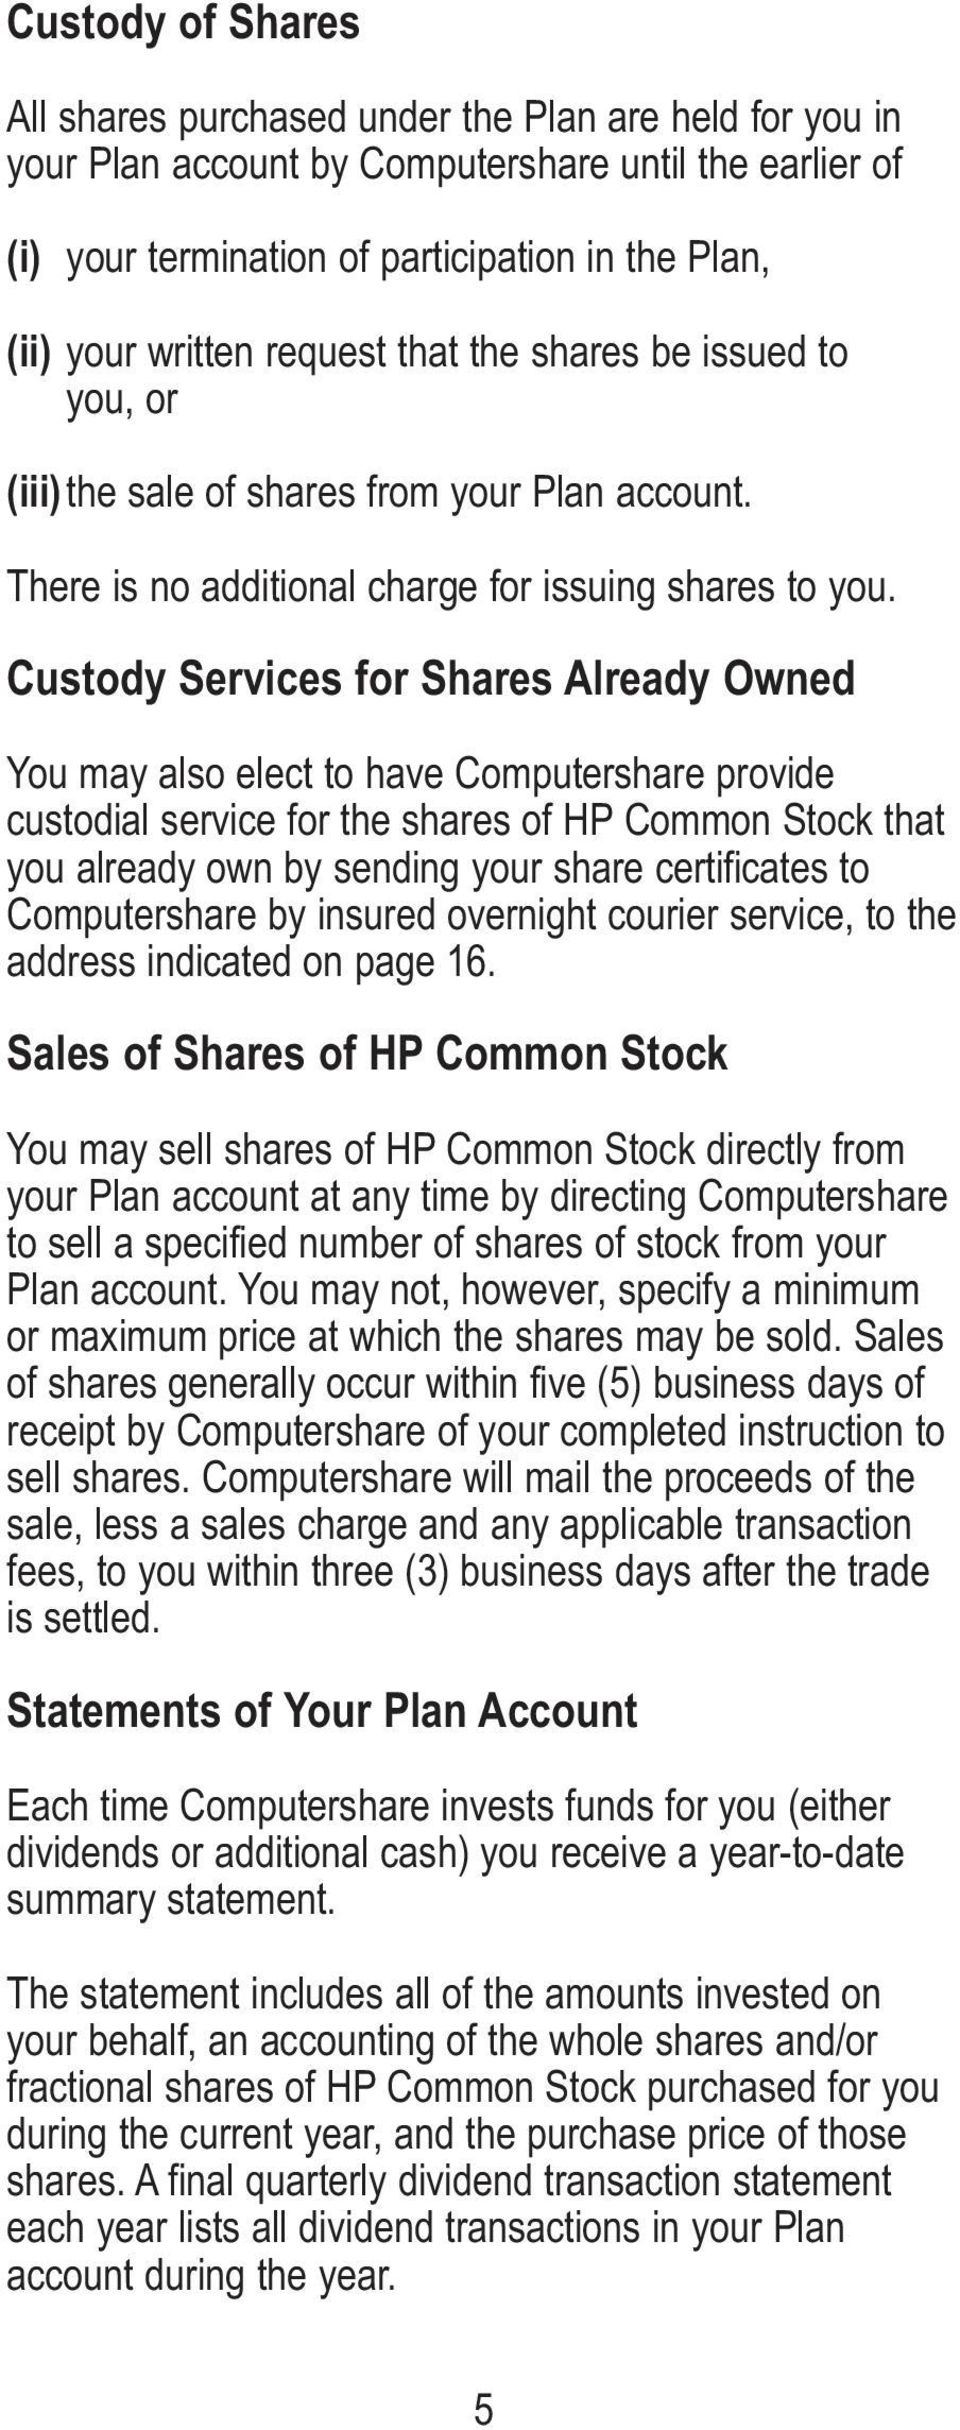 Custody Services for Shares Already Owned You may also elect to have Computershare provide custodial service for the shares of HP Common Stock that you already own by sending your share certificates